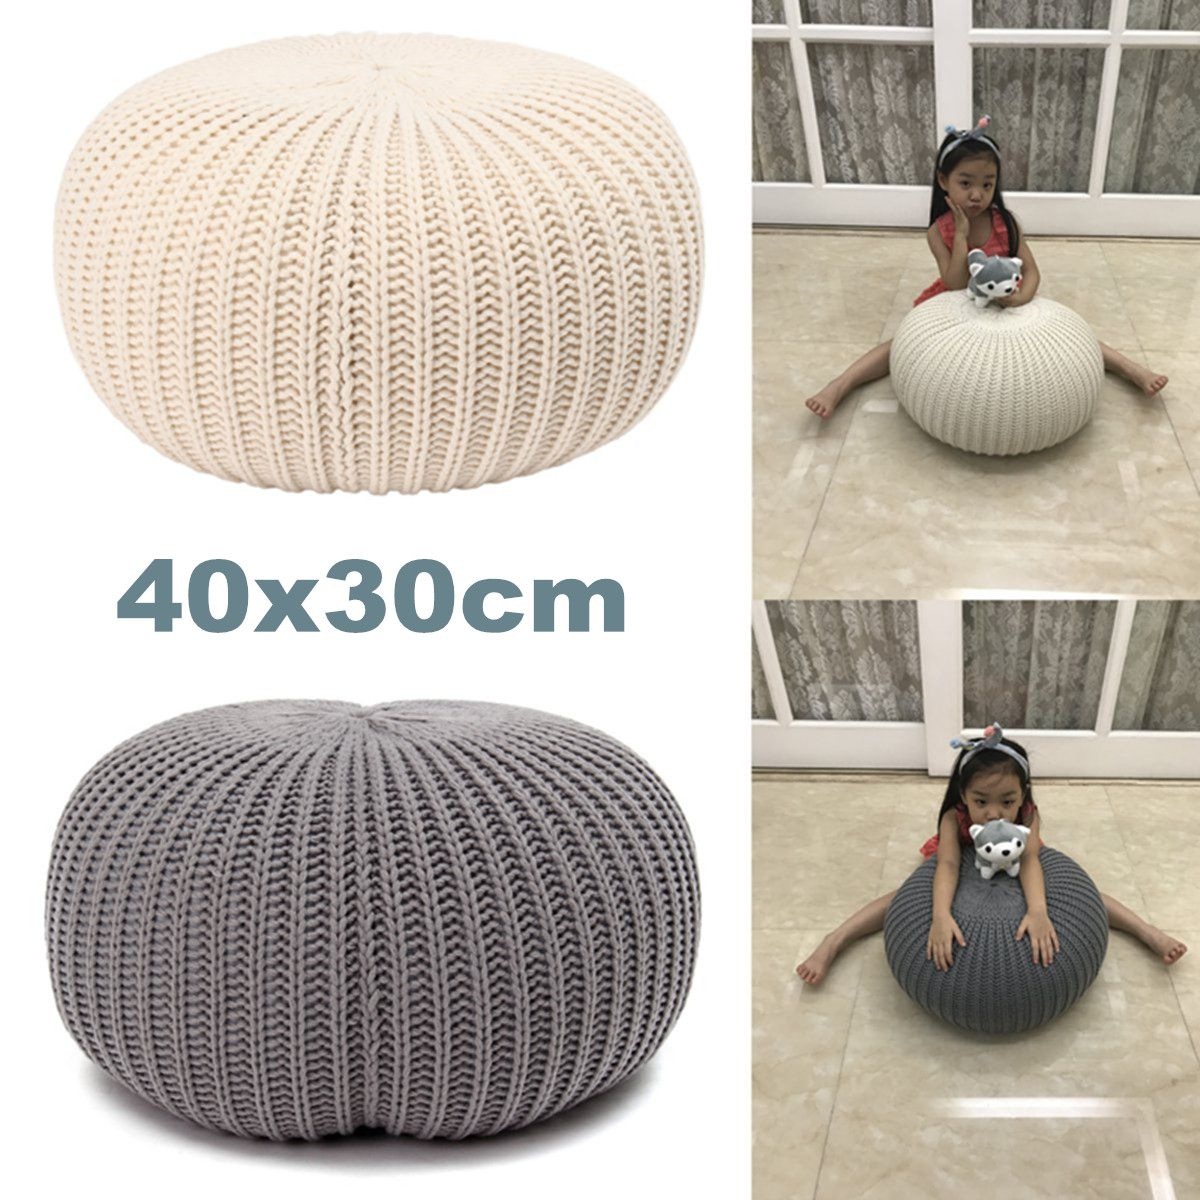 Modern Round Footstool Ottoman Pouffe Stool Fabric Foot Rest Kids Photo Props Nordic Sofa Cushion Stool Footrest Bedroom Decor